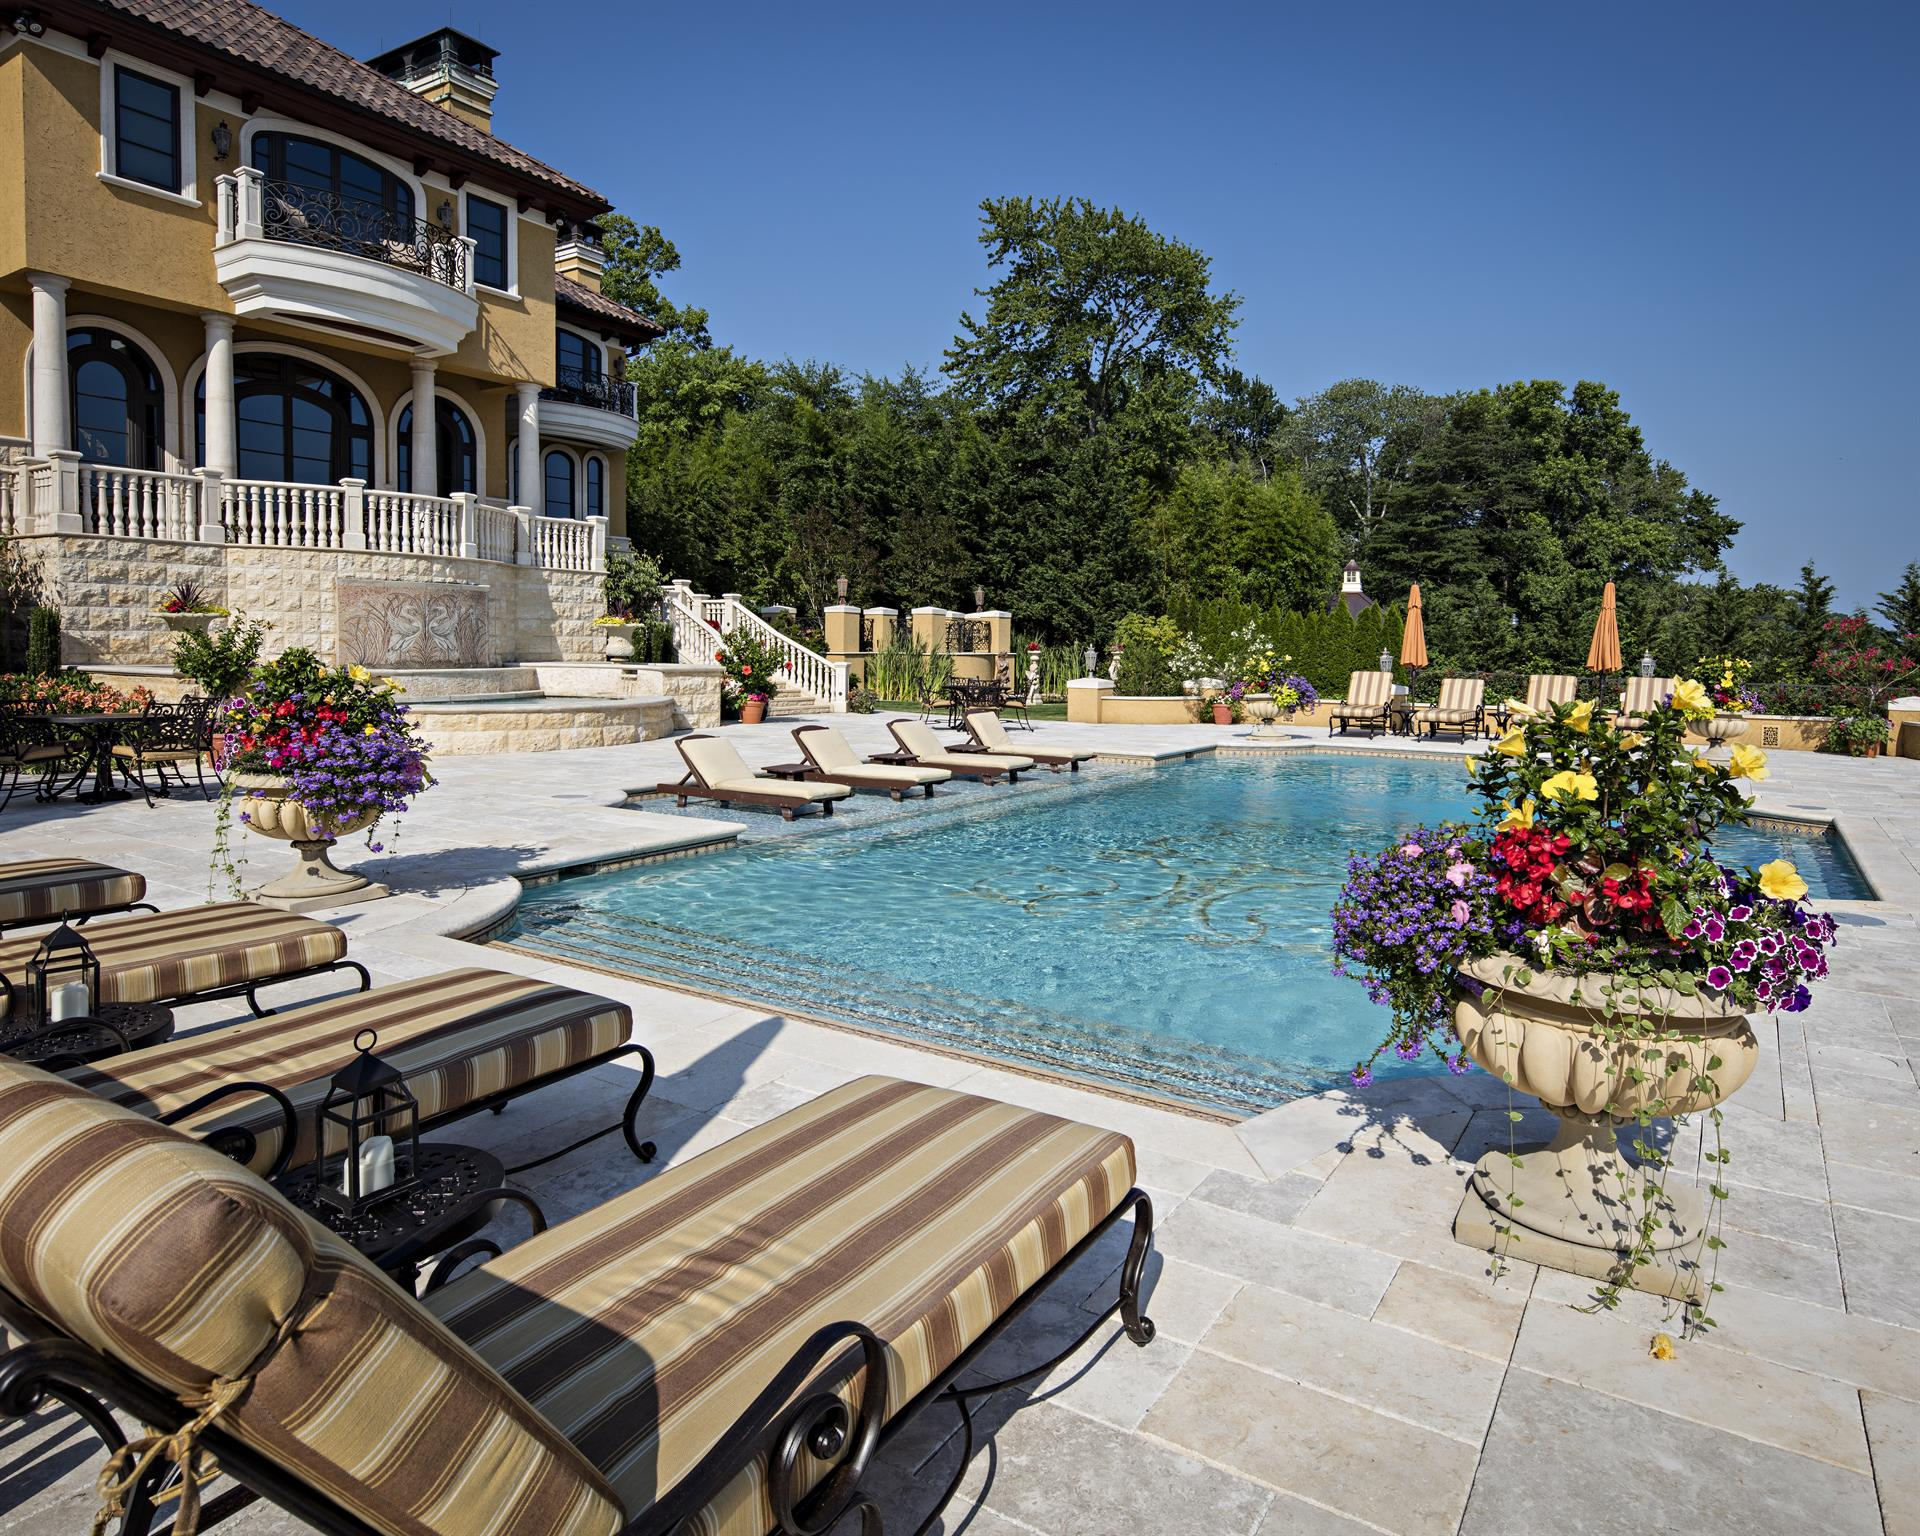 A beautiful gunite pool with a mosaic floor and lapis lazuli border is the centerpiece of this Mediterranean-style riverfront estate in Middletown, New Jersey.